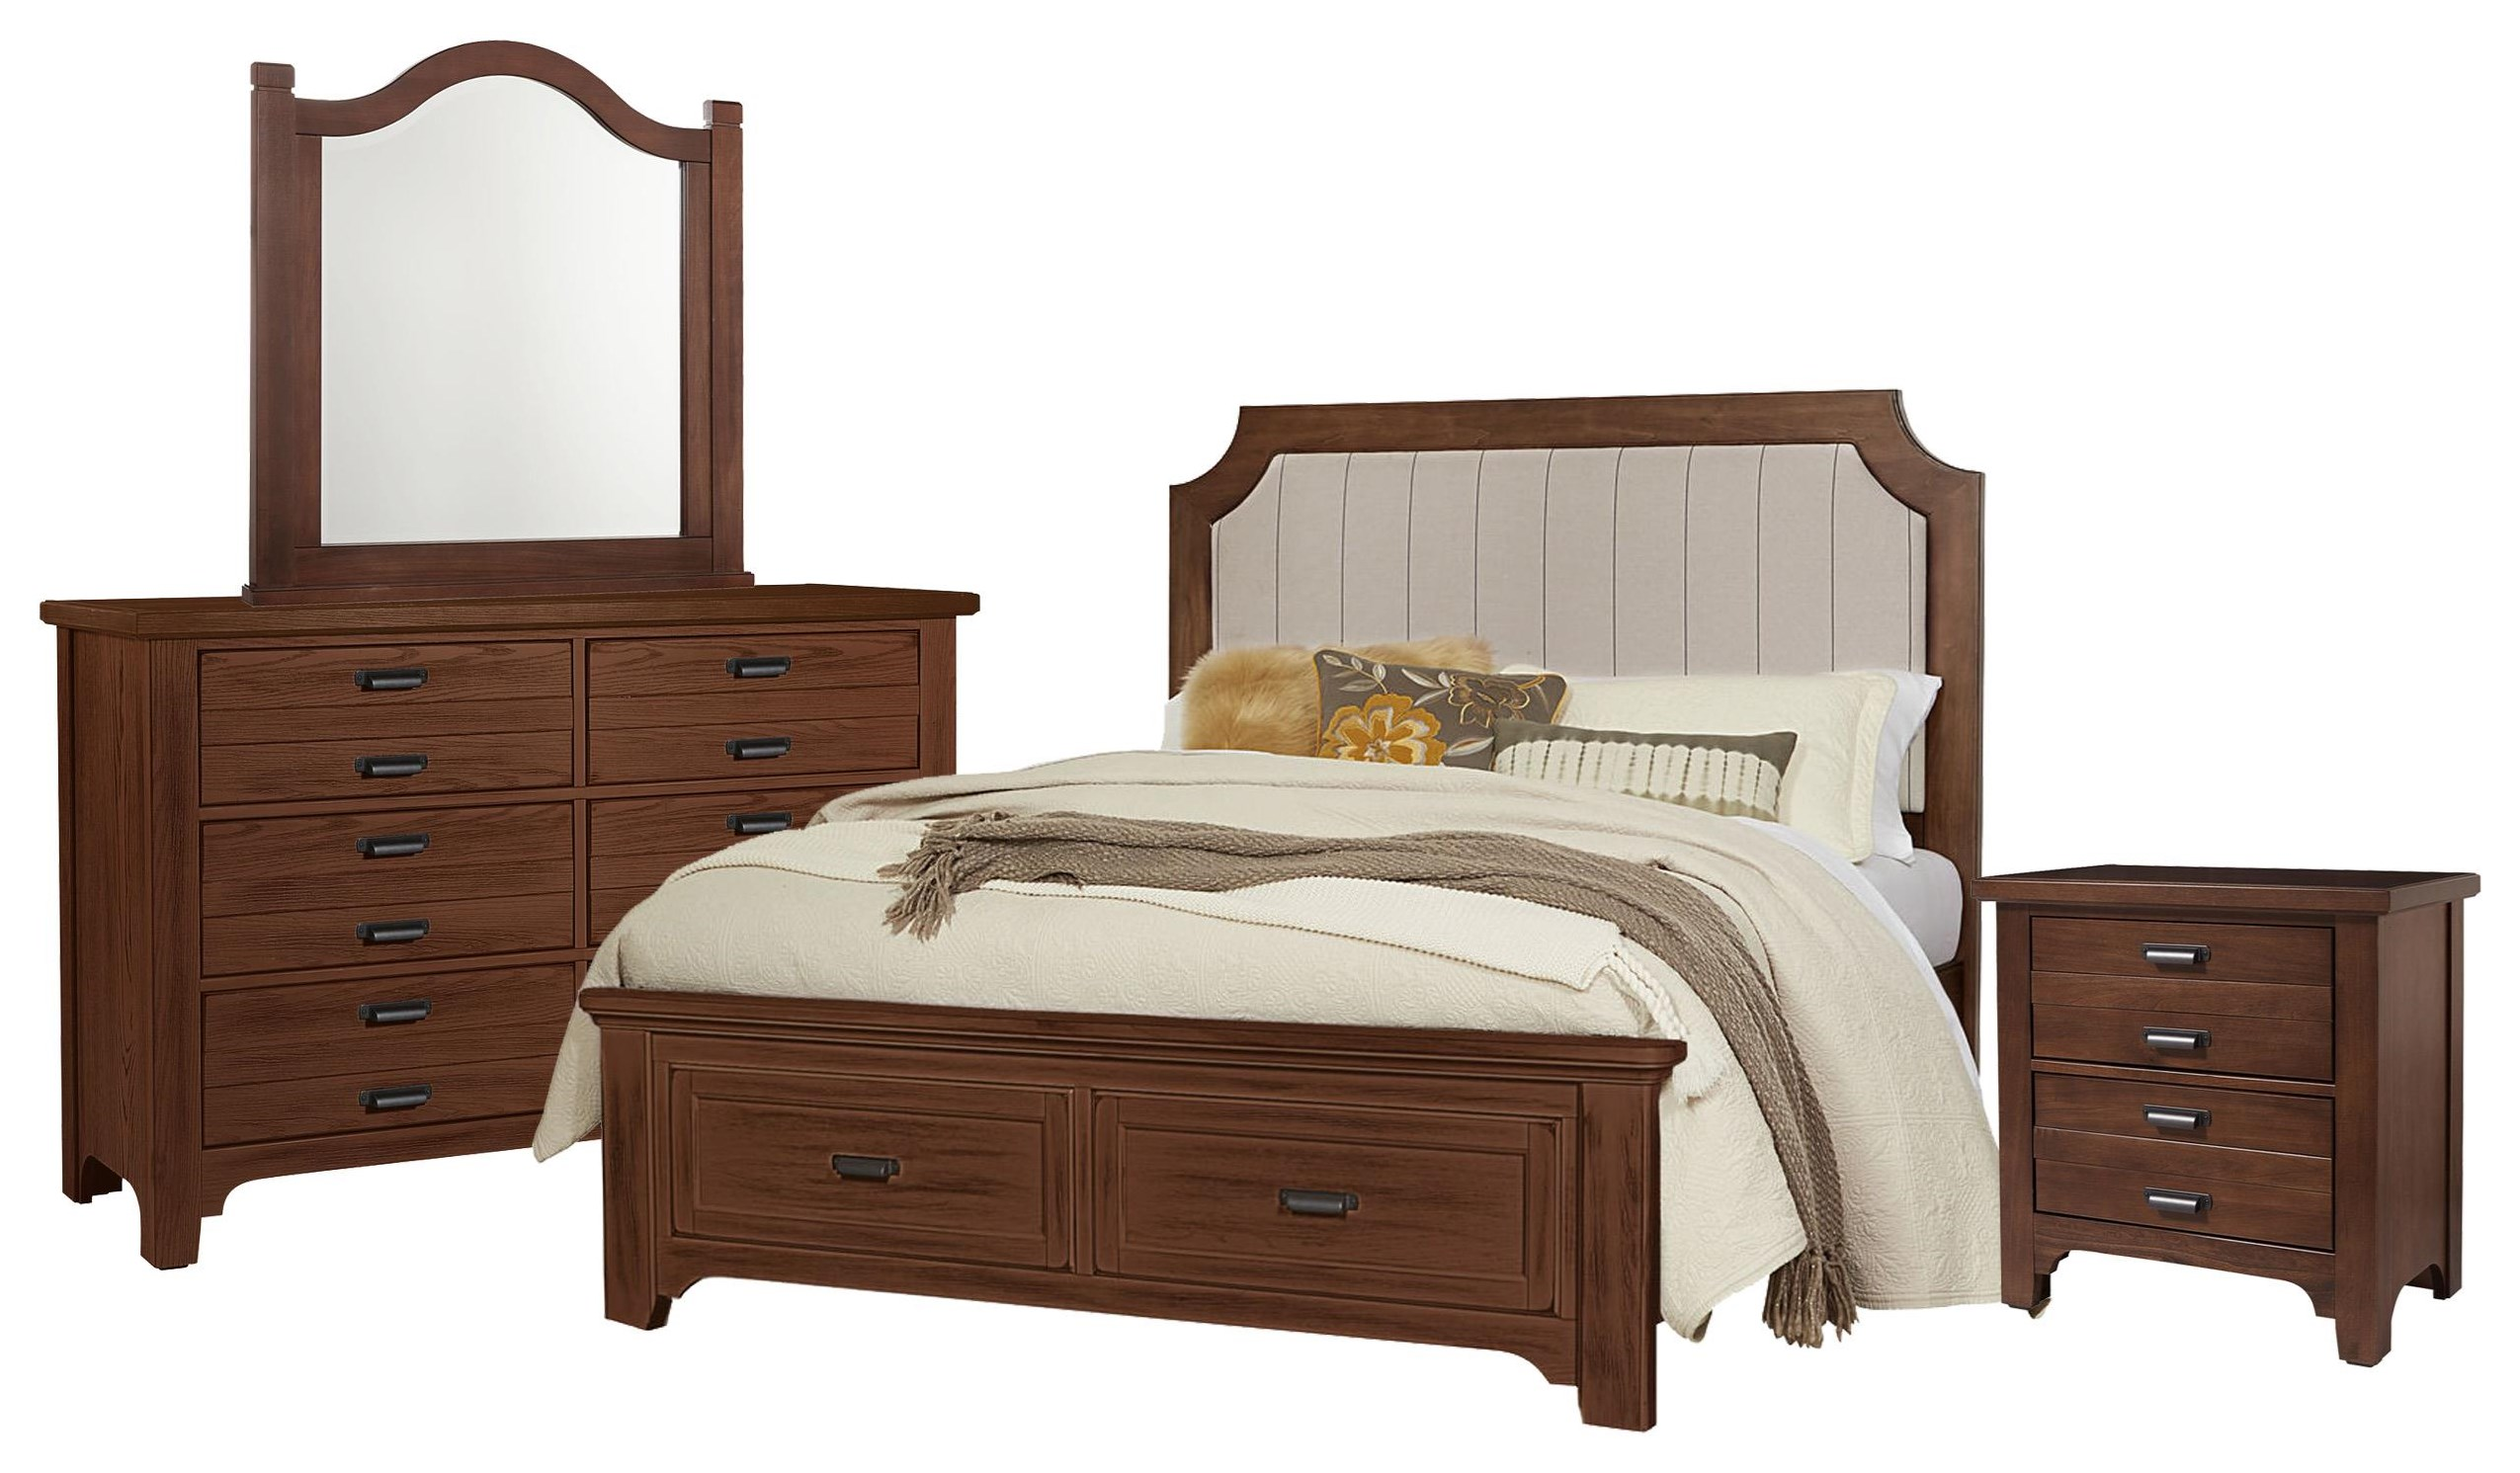 Bungalo Home King Bed, Dresser, Mirror, Nighstand by Vaughan Bassett at Johnny Janosik